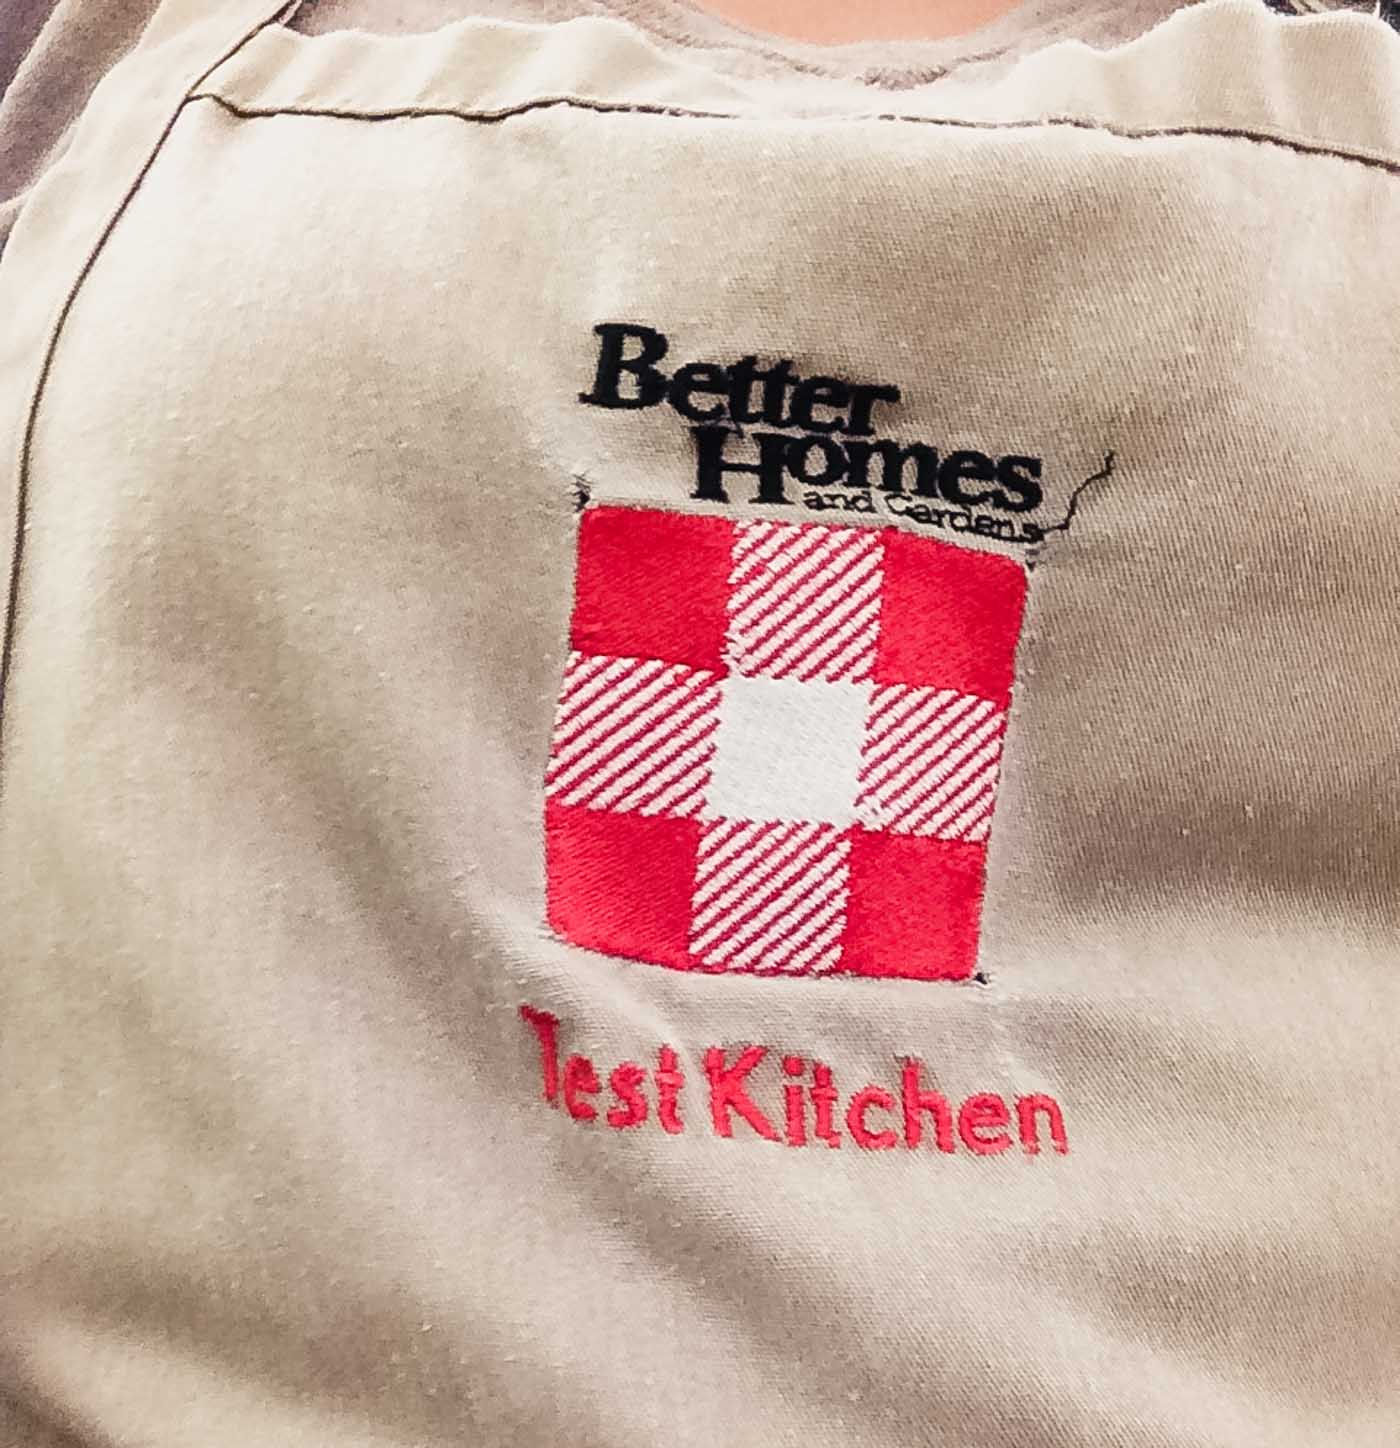 Photograph of a Better Homes & Gardens Apron